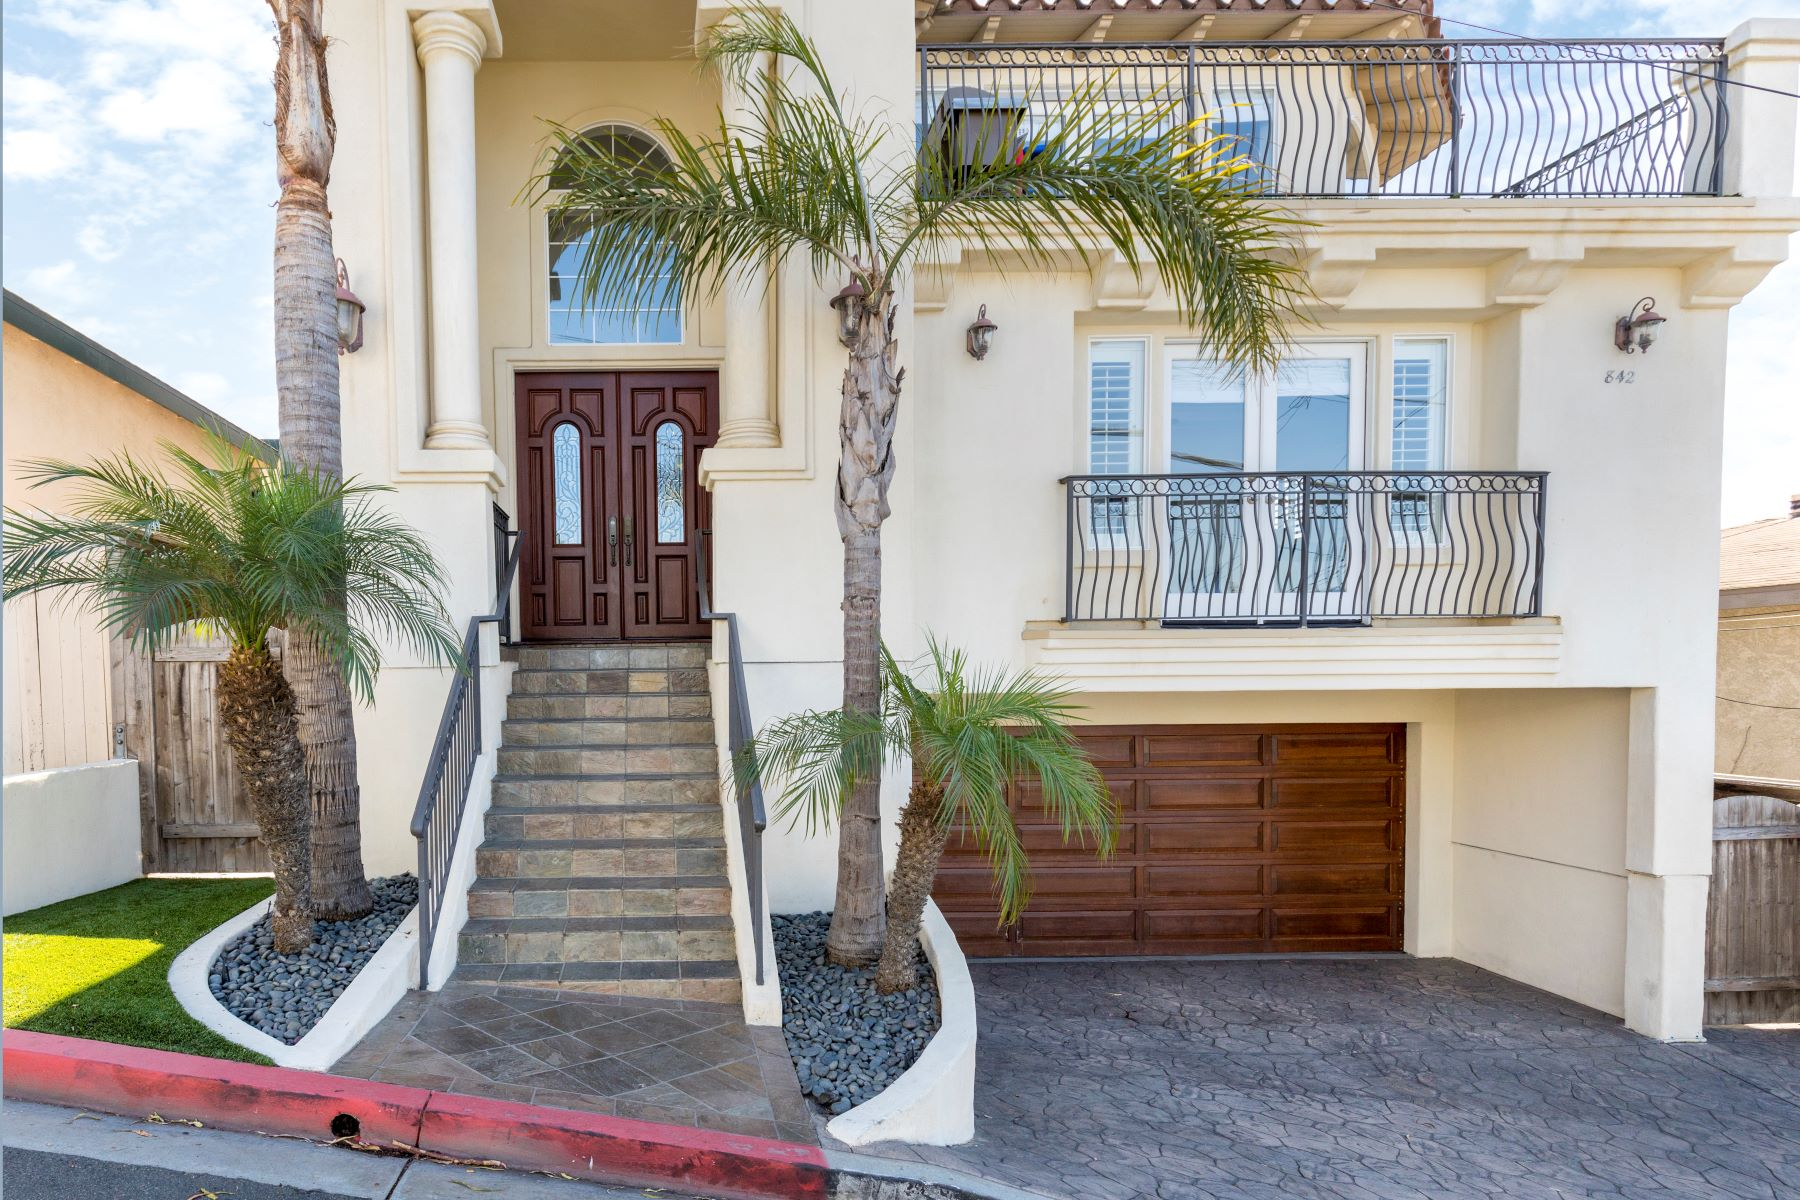 townhouses for Sale at 842 8th Street, Hermosa Beach, CA 90254 842 8th Street Hermosa Beach, California 90254 United States